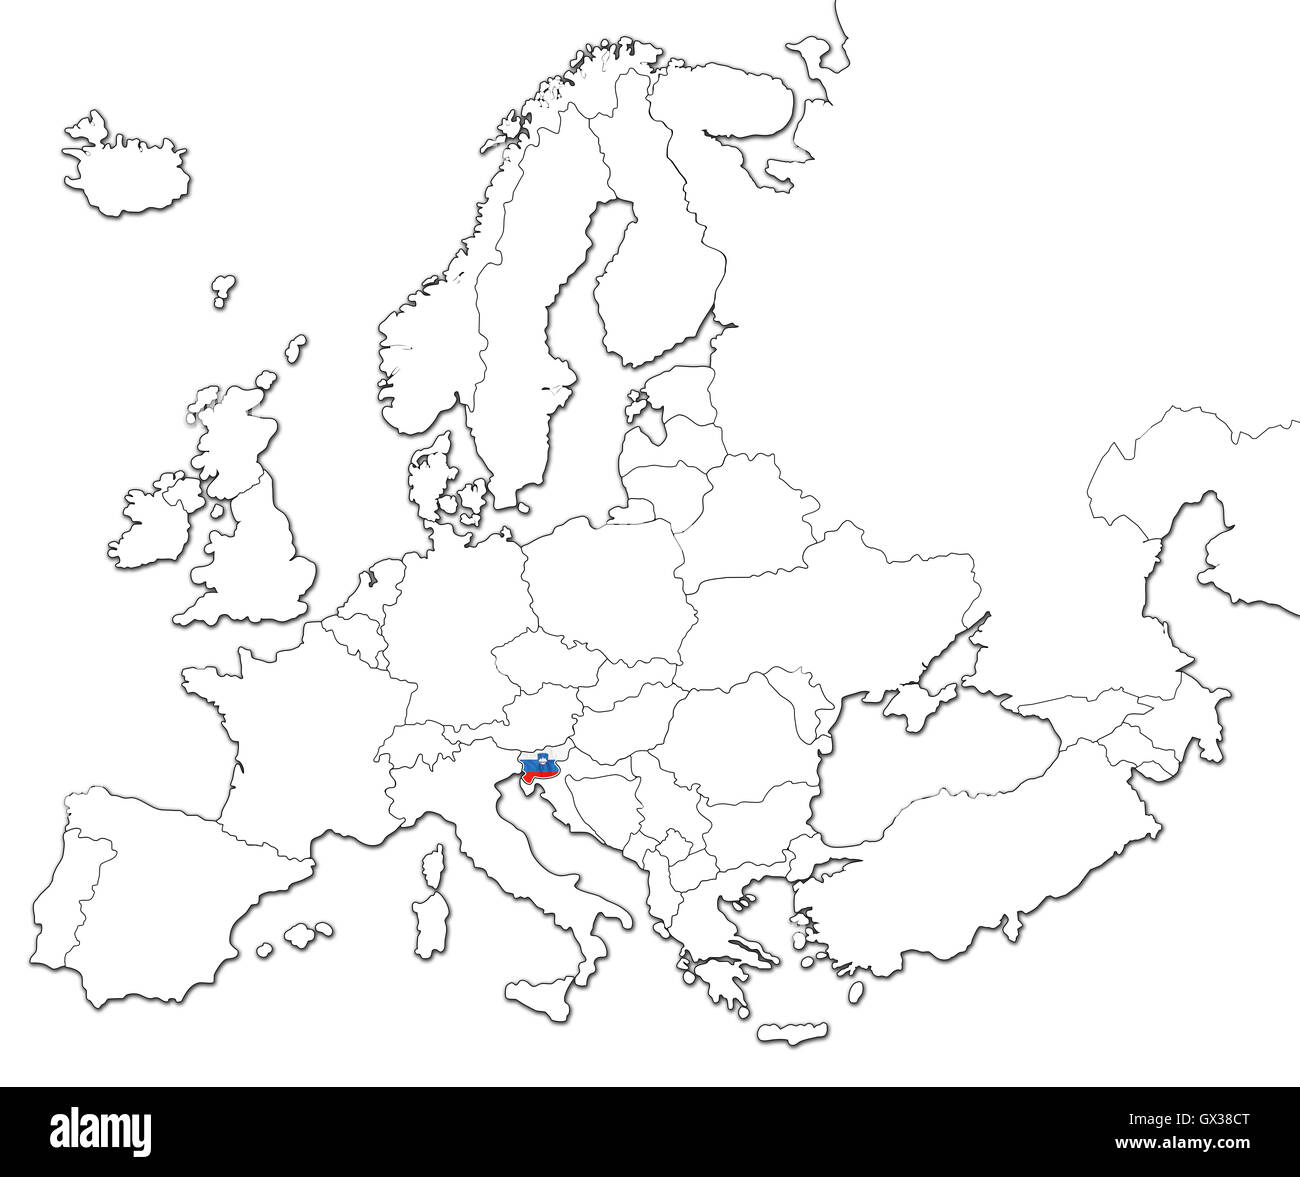 Map of Slovenia - Stock Image